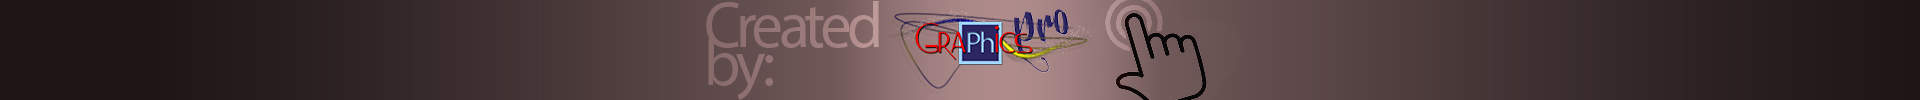 GraphicsPro Website Design South Africa